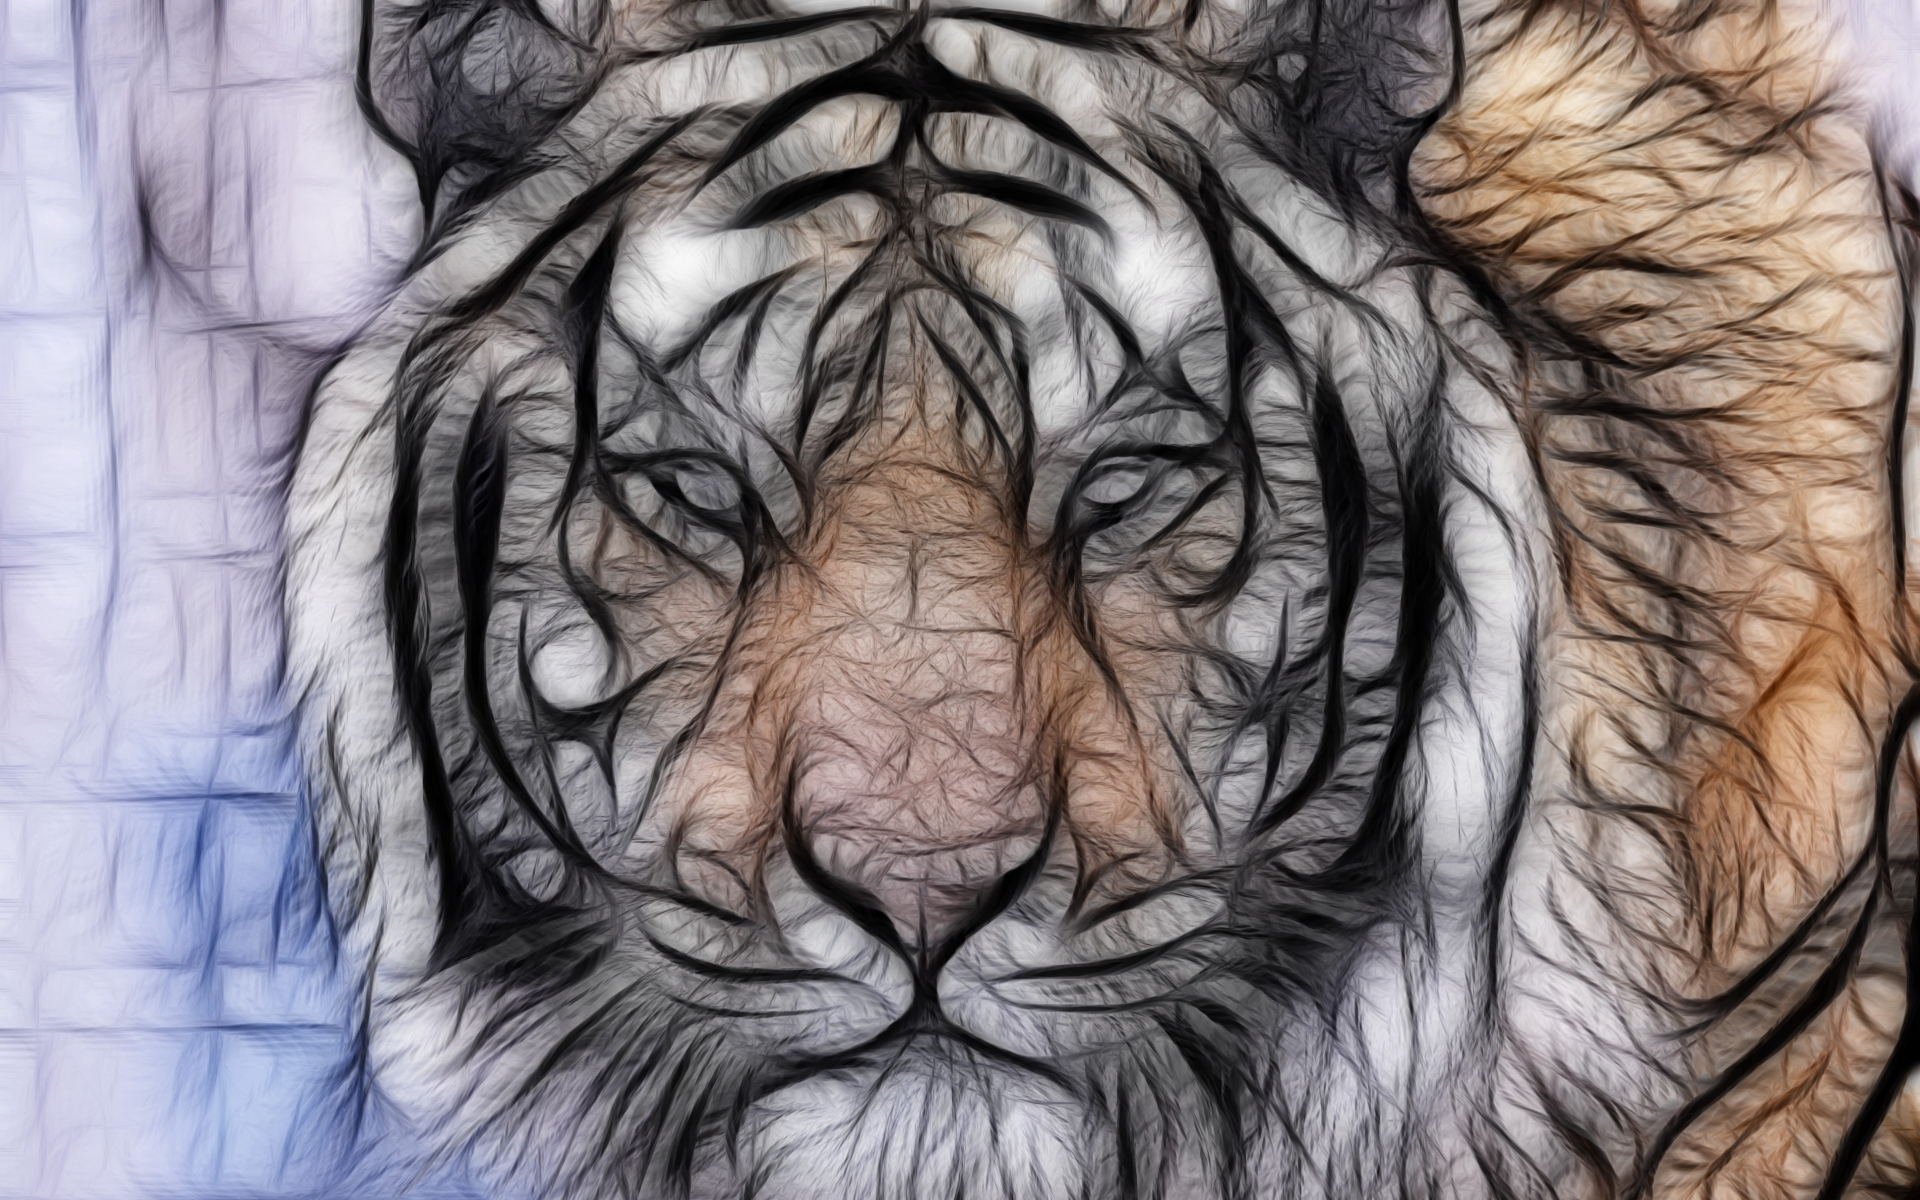 Abstract fractal art cg digital tiger stripes pattern predator pov abstract fractal art cg digital tiger stripes pattern predator pov eyes wallpaper 1920x1200 27748 wallpaperup thecheapjerseys Gallery